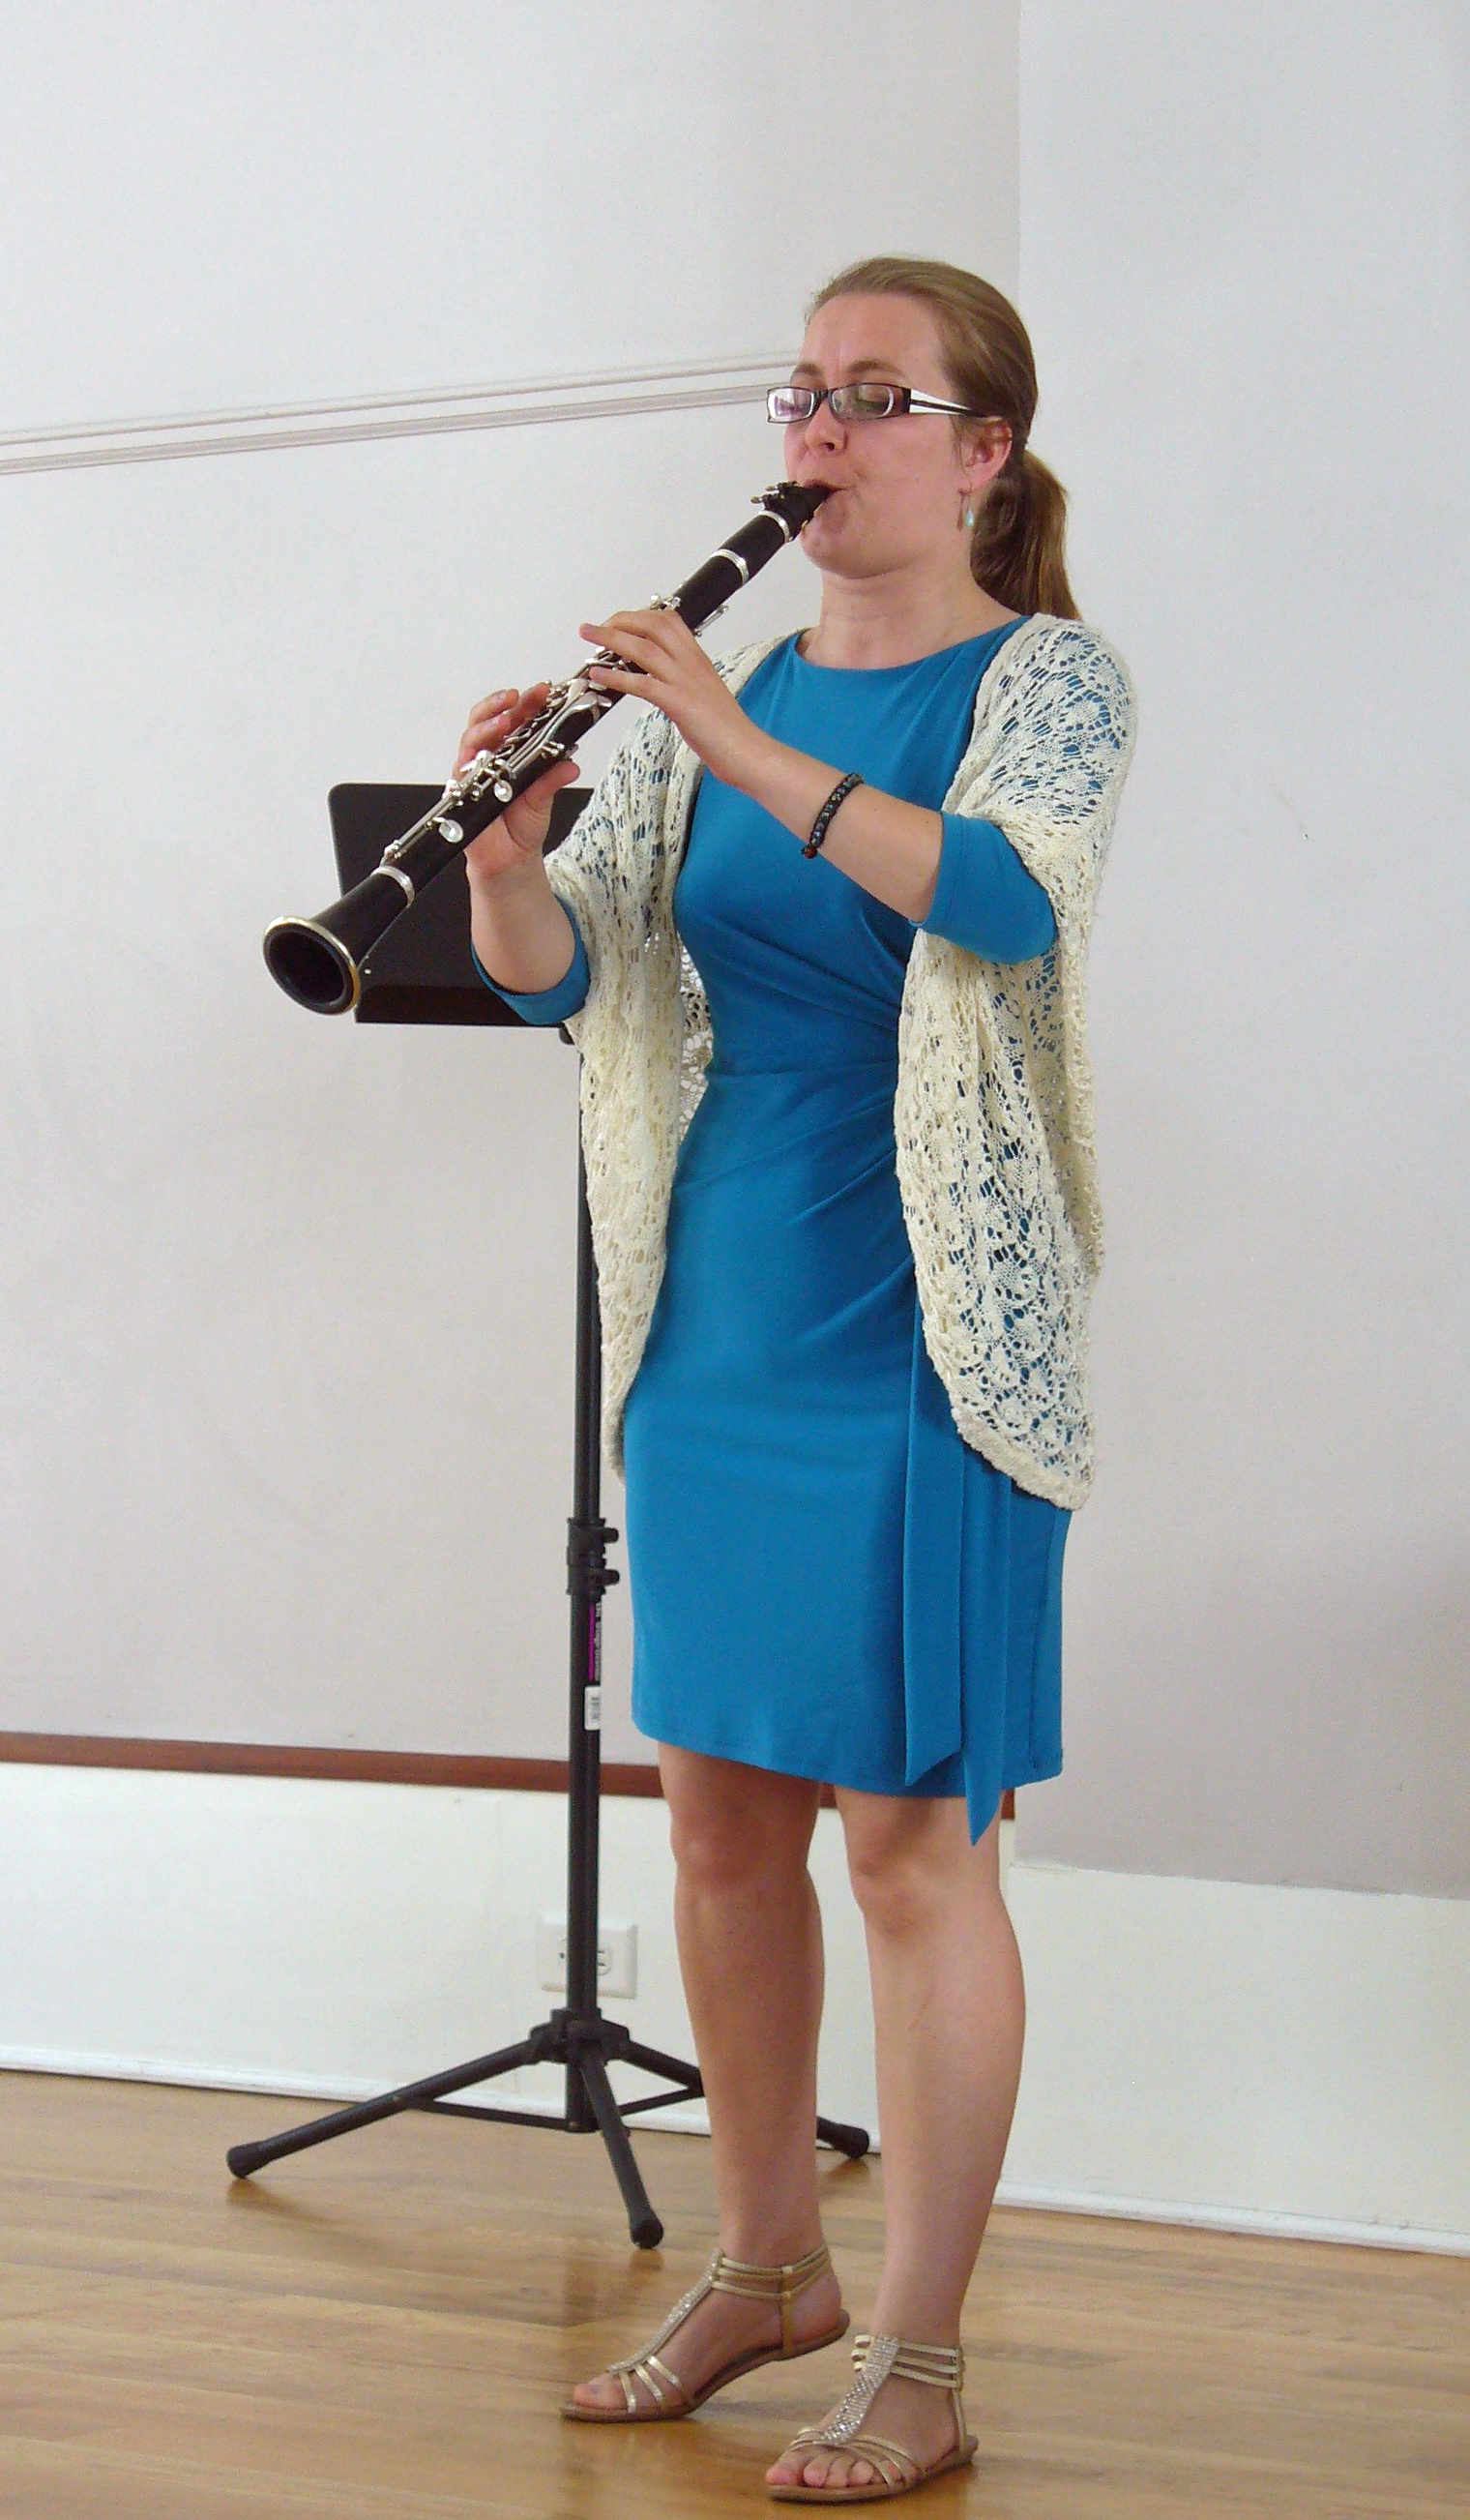 Clarinetist Monika Woods